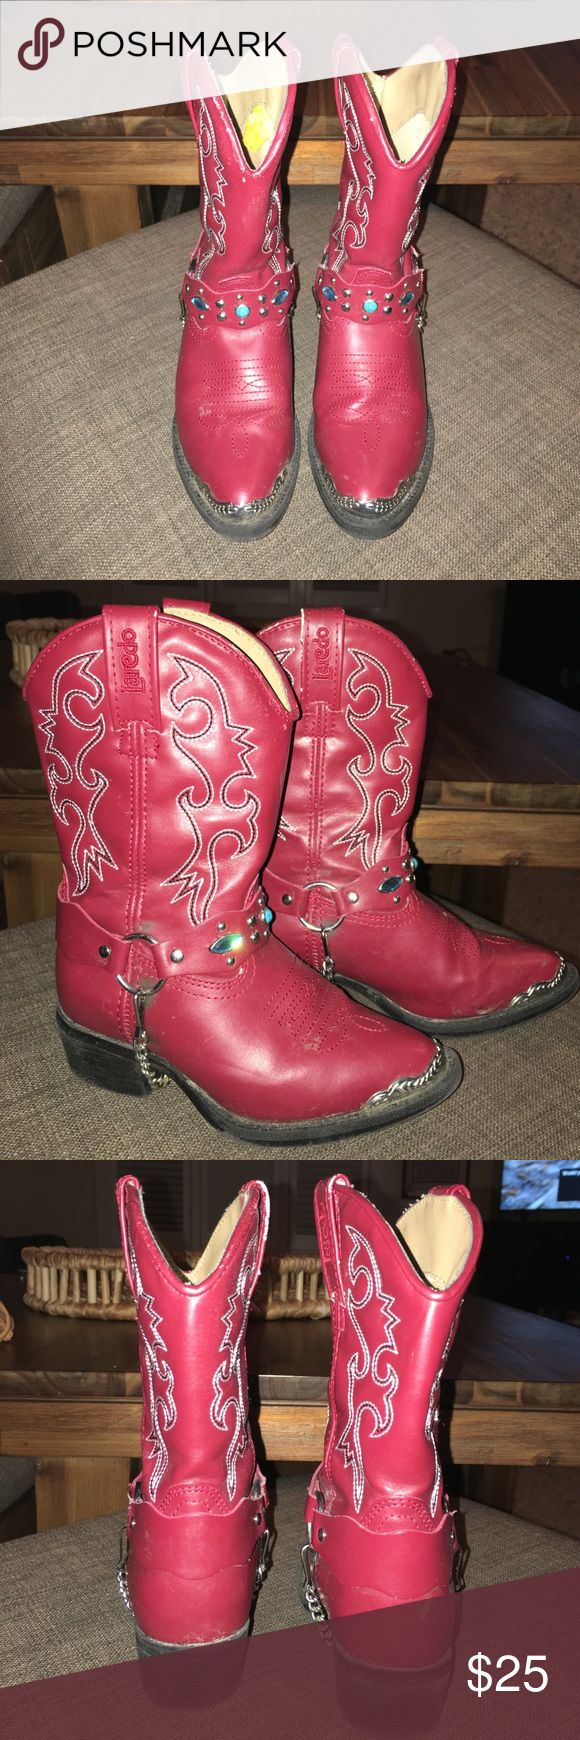 Little girls cowboy boots Little girls cowboy boots Laredo Shoes Boots